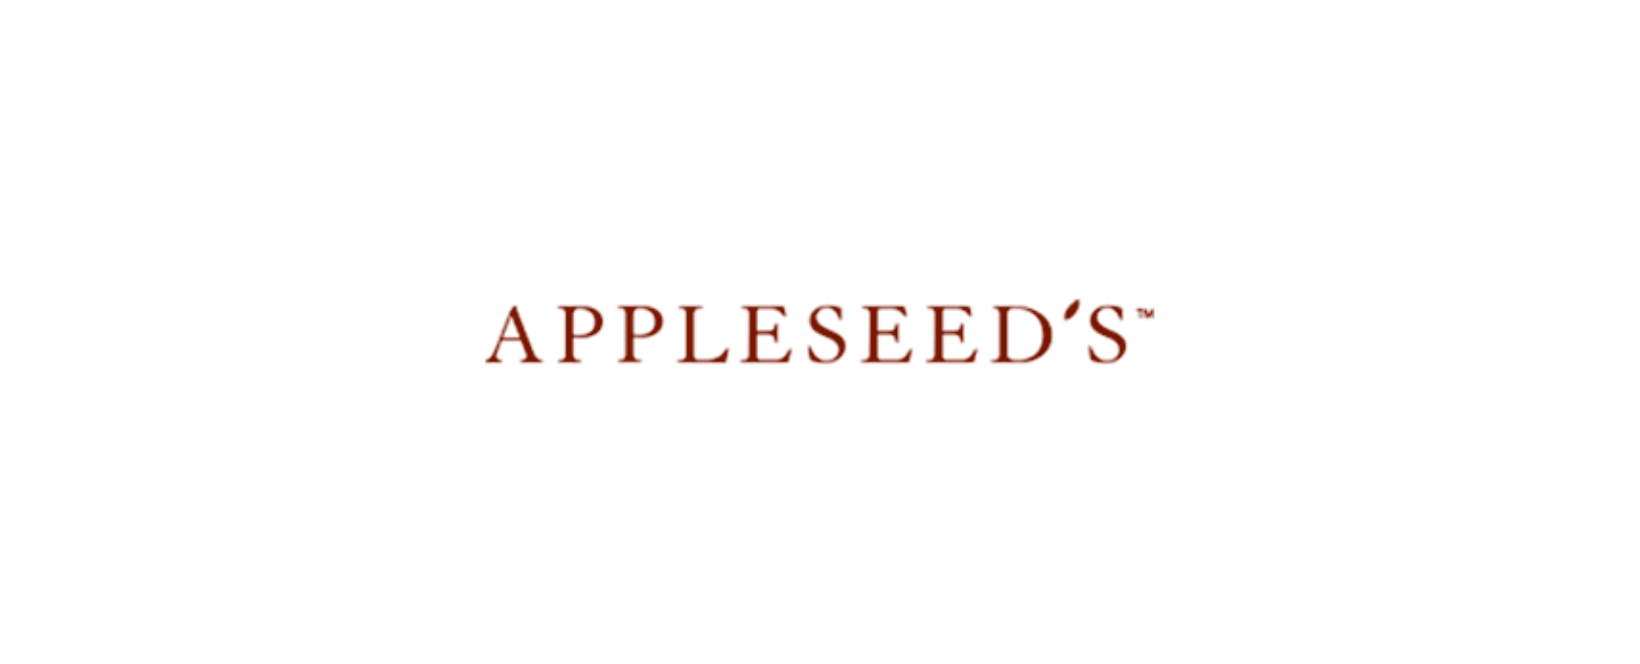 Appleseed's Discount Code 2021